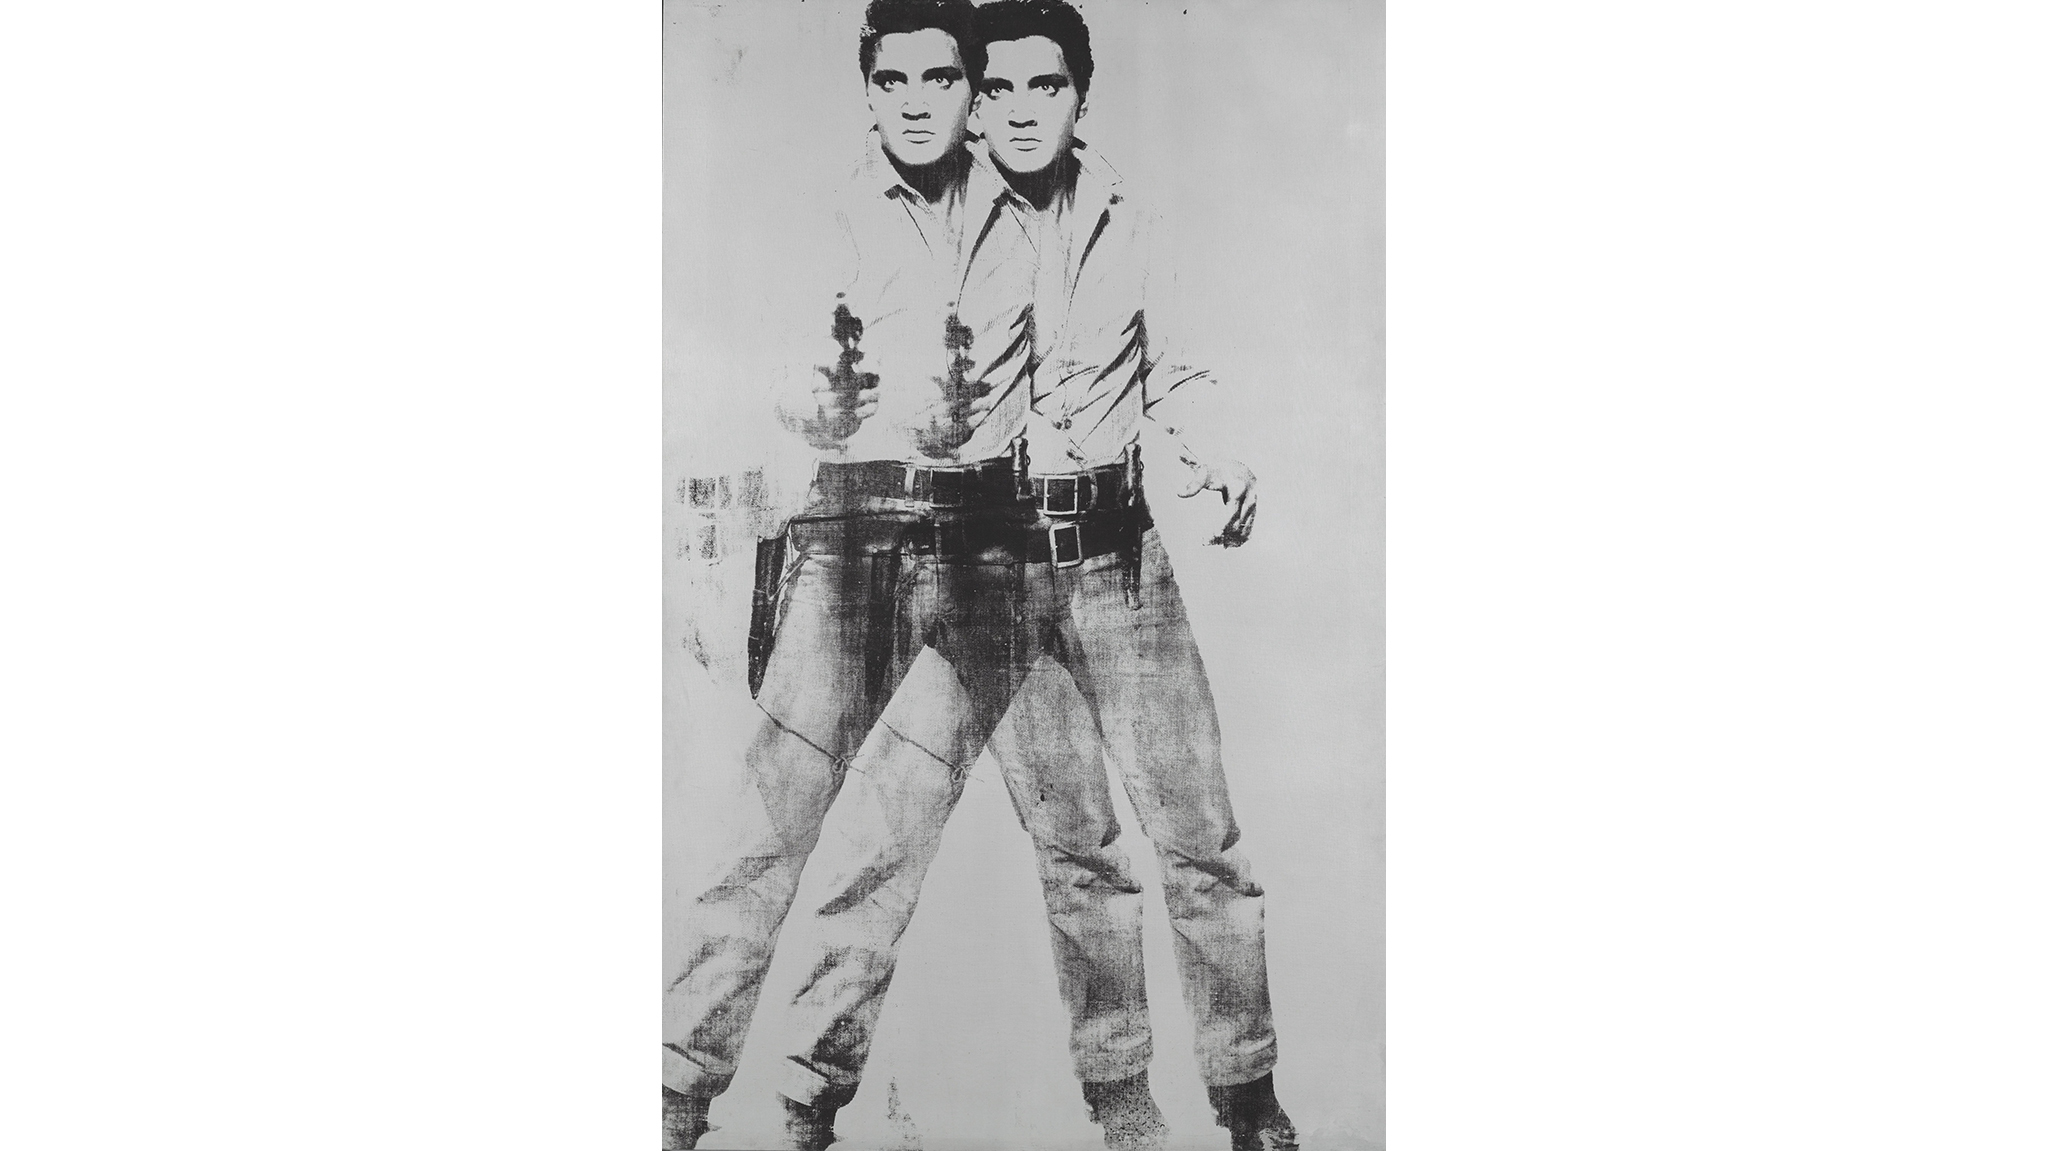 Andy Warhol, Double Elvis, 1963